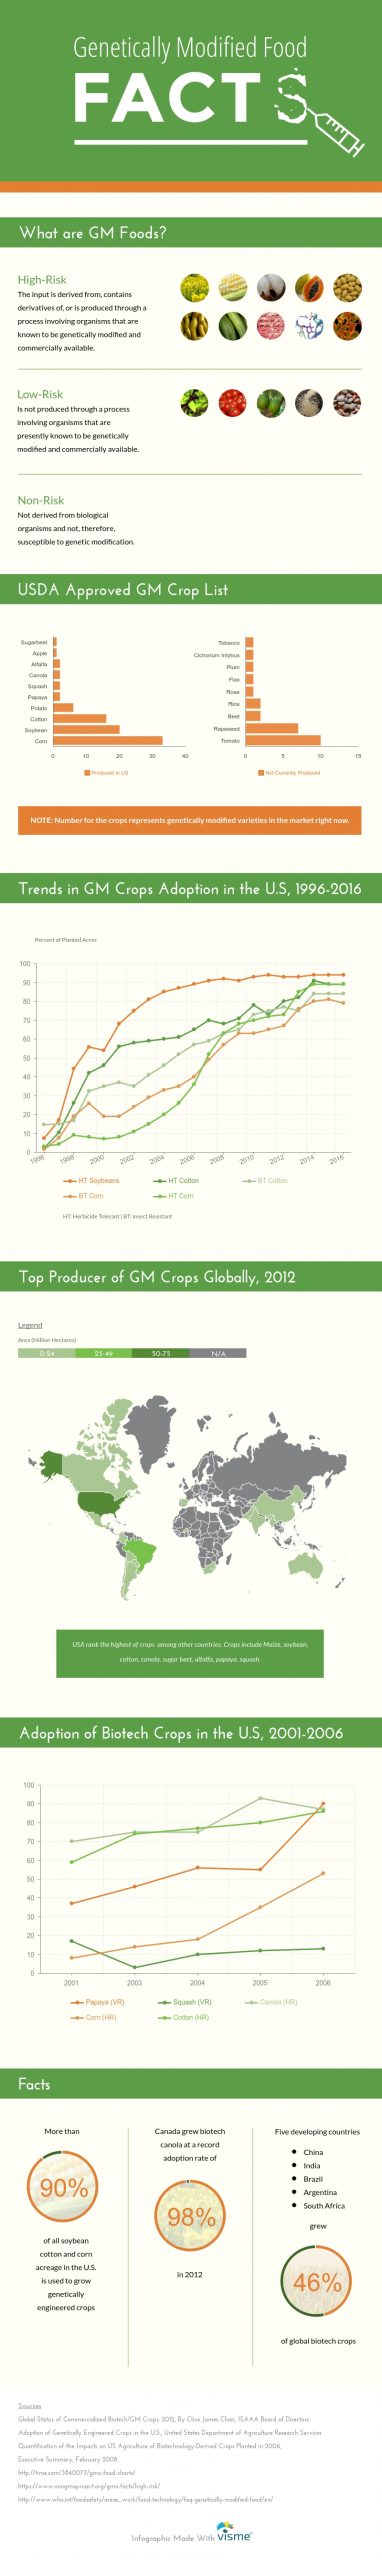 GMO Food Facts Infographic